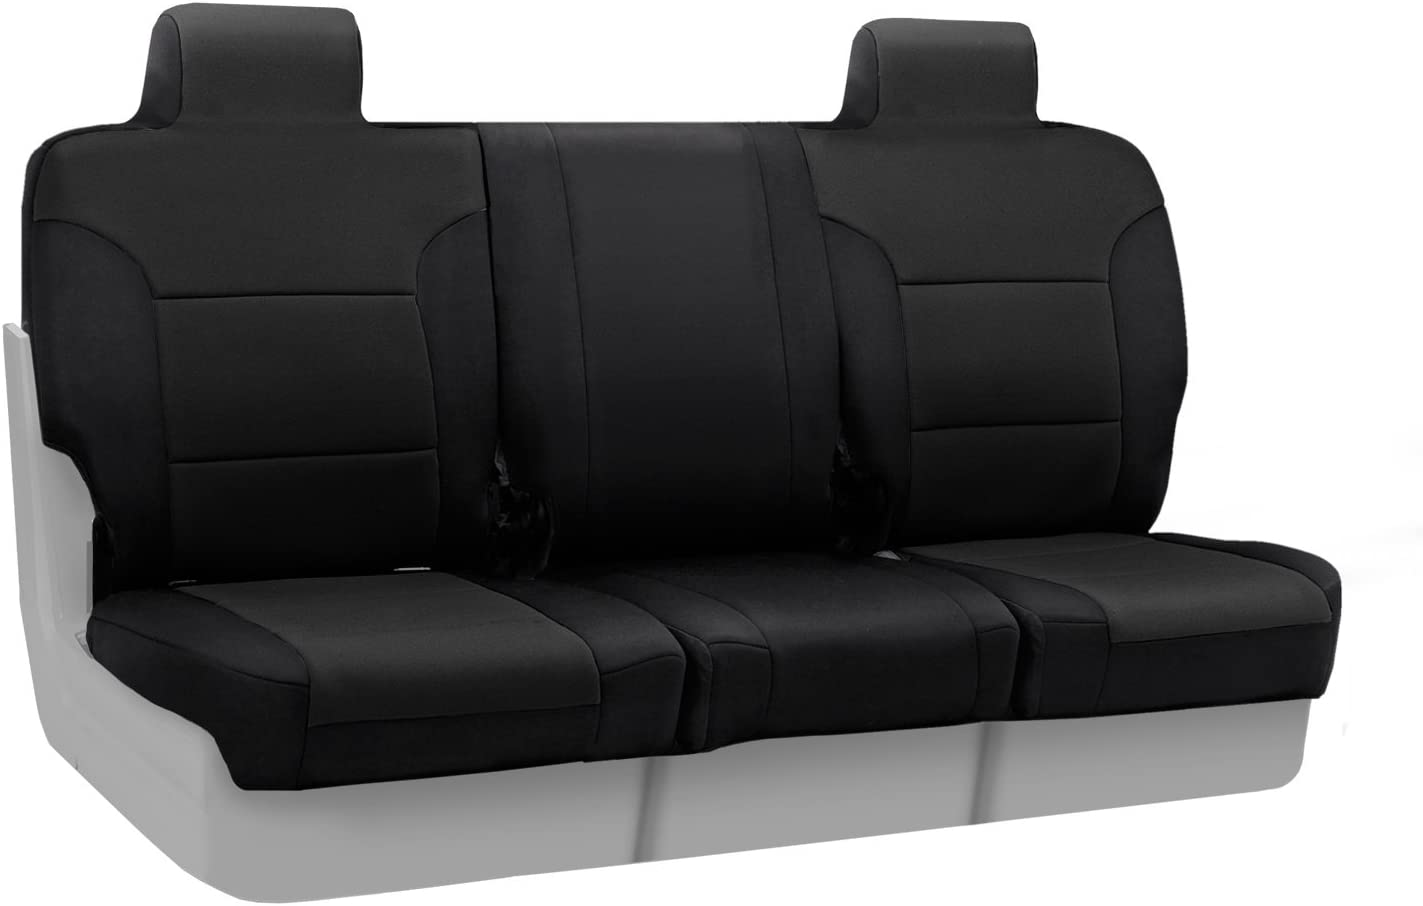 Seat Covers Neosupreme For Dodge Ram 1500 Coverking Custom Fit